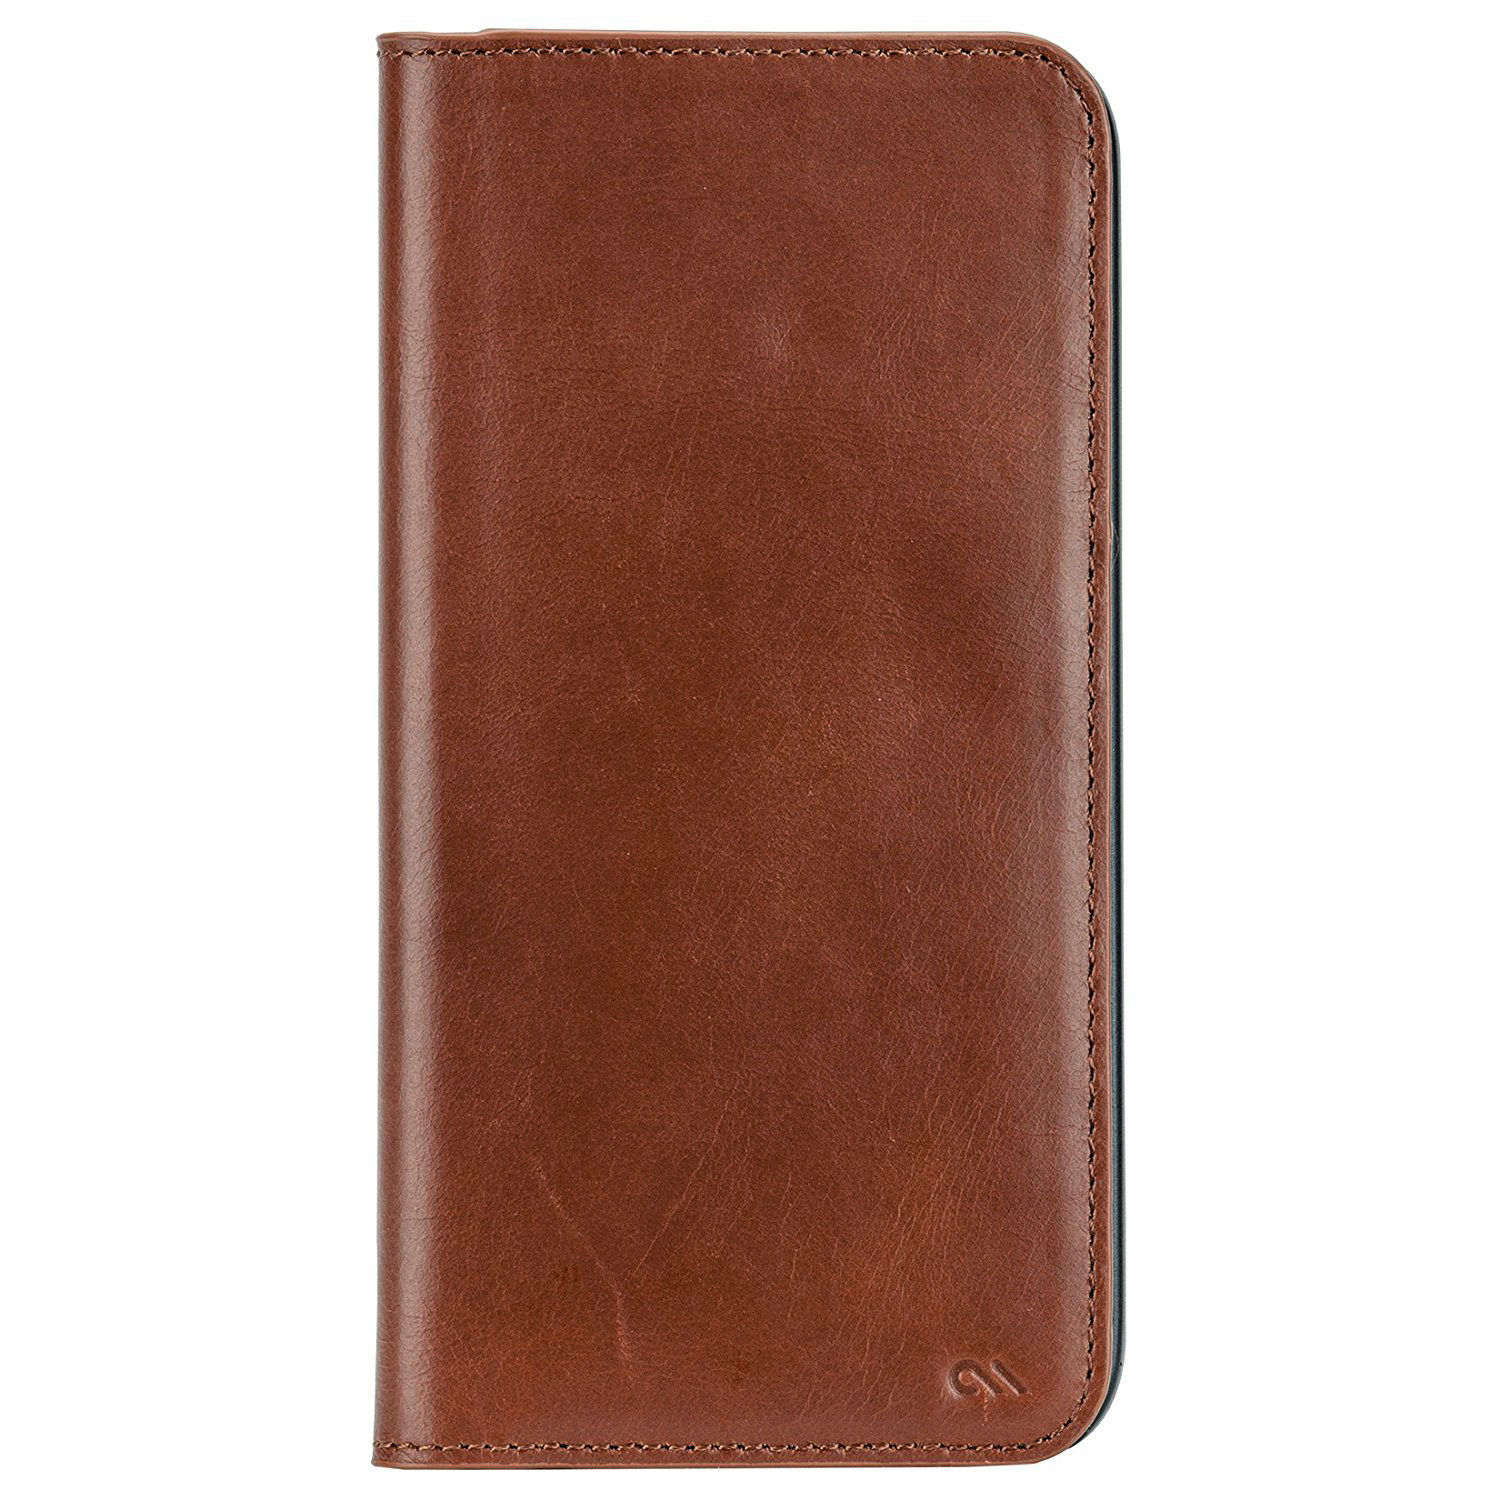 Case-Mate Premium Leather Wallet Folio Case for Samsung Galaxy S6 - Brown